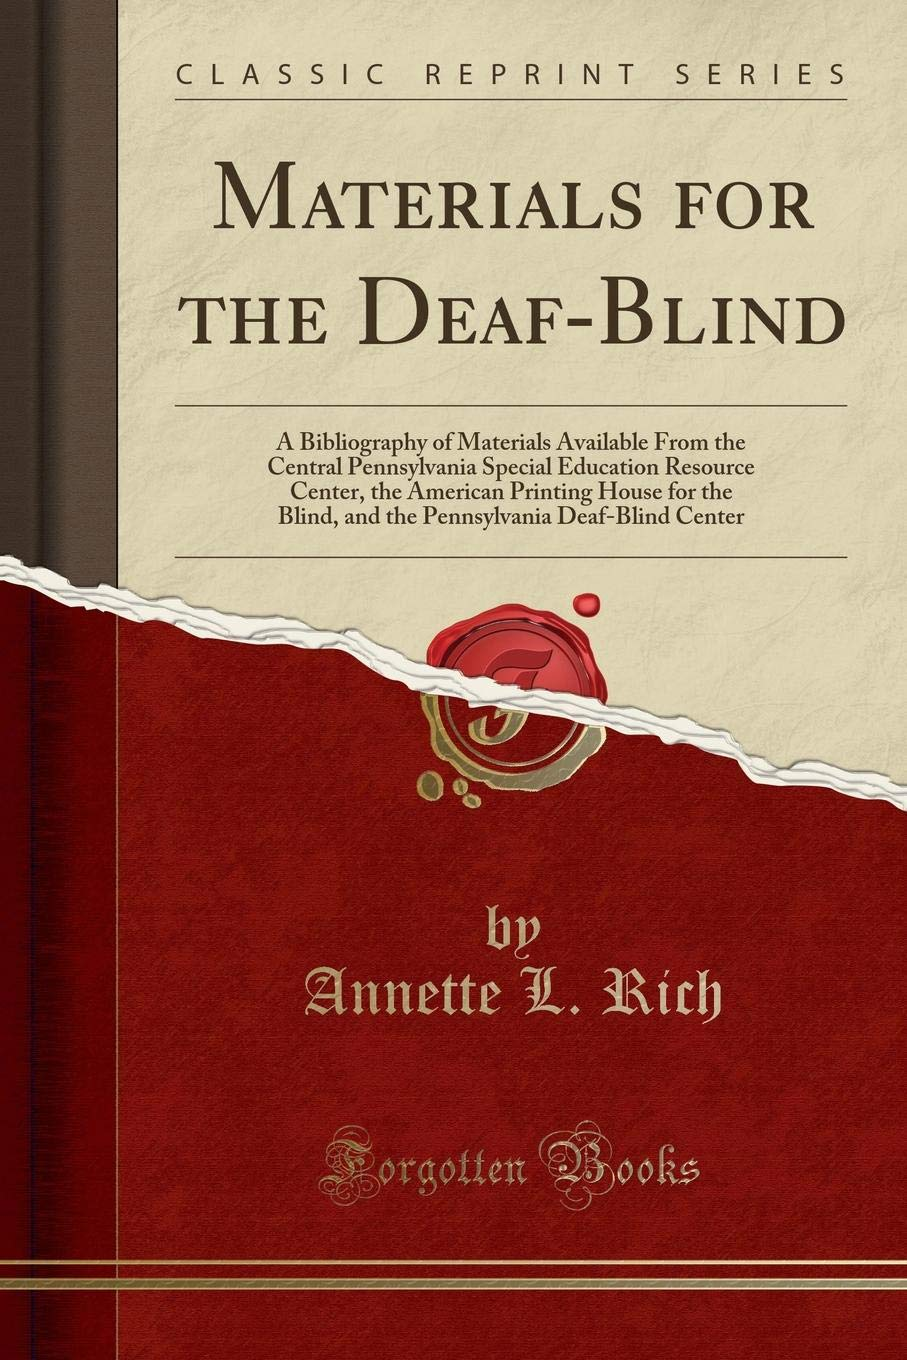 Download Materials for the Deaf-Blind: A Bibliography of Materials Available From the Central Pennsylvania Special Education Resource Center, the American ... Deaf-Blind Center (Classic Reprint) ebook